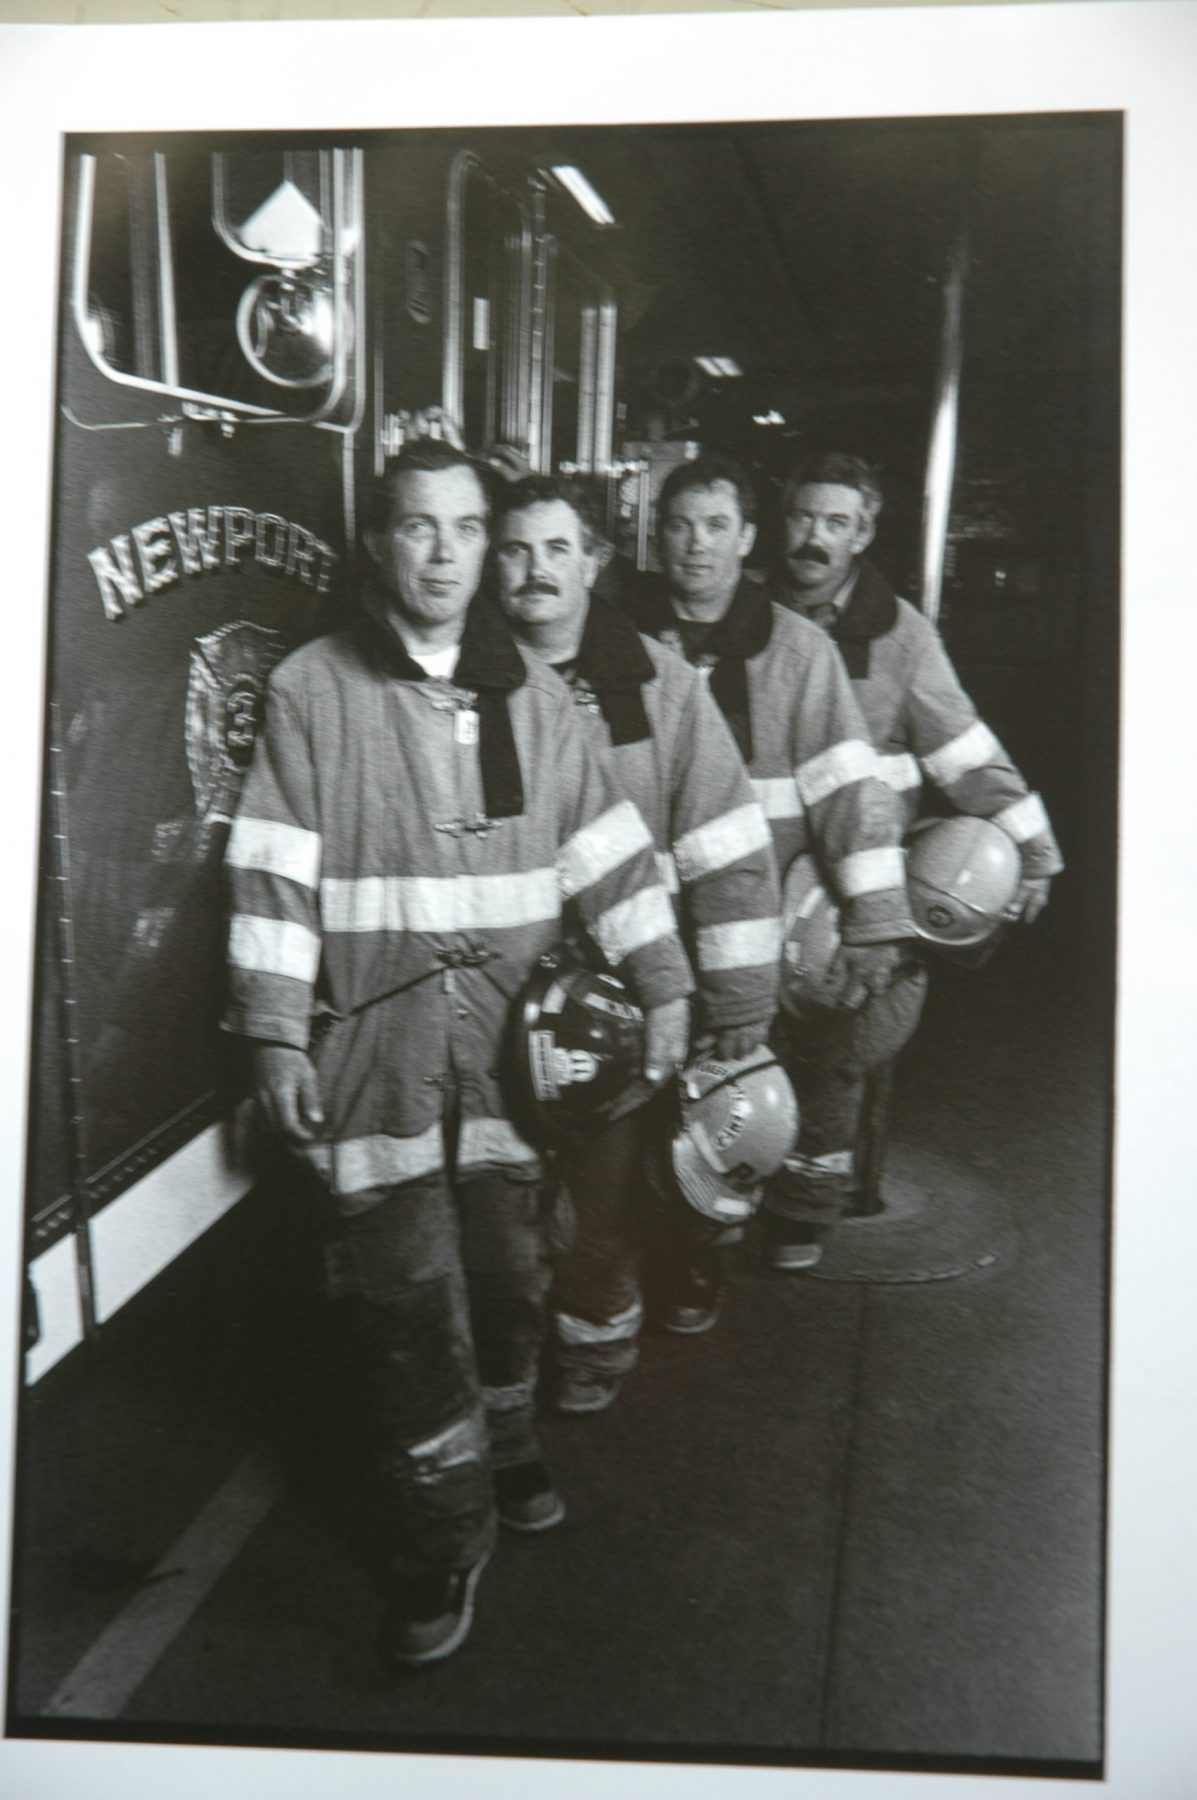 The four Kirwin brother firefighters